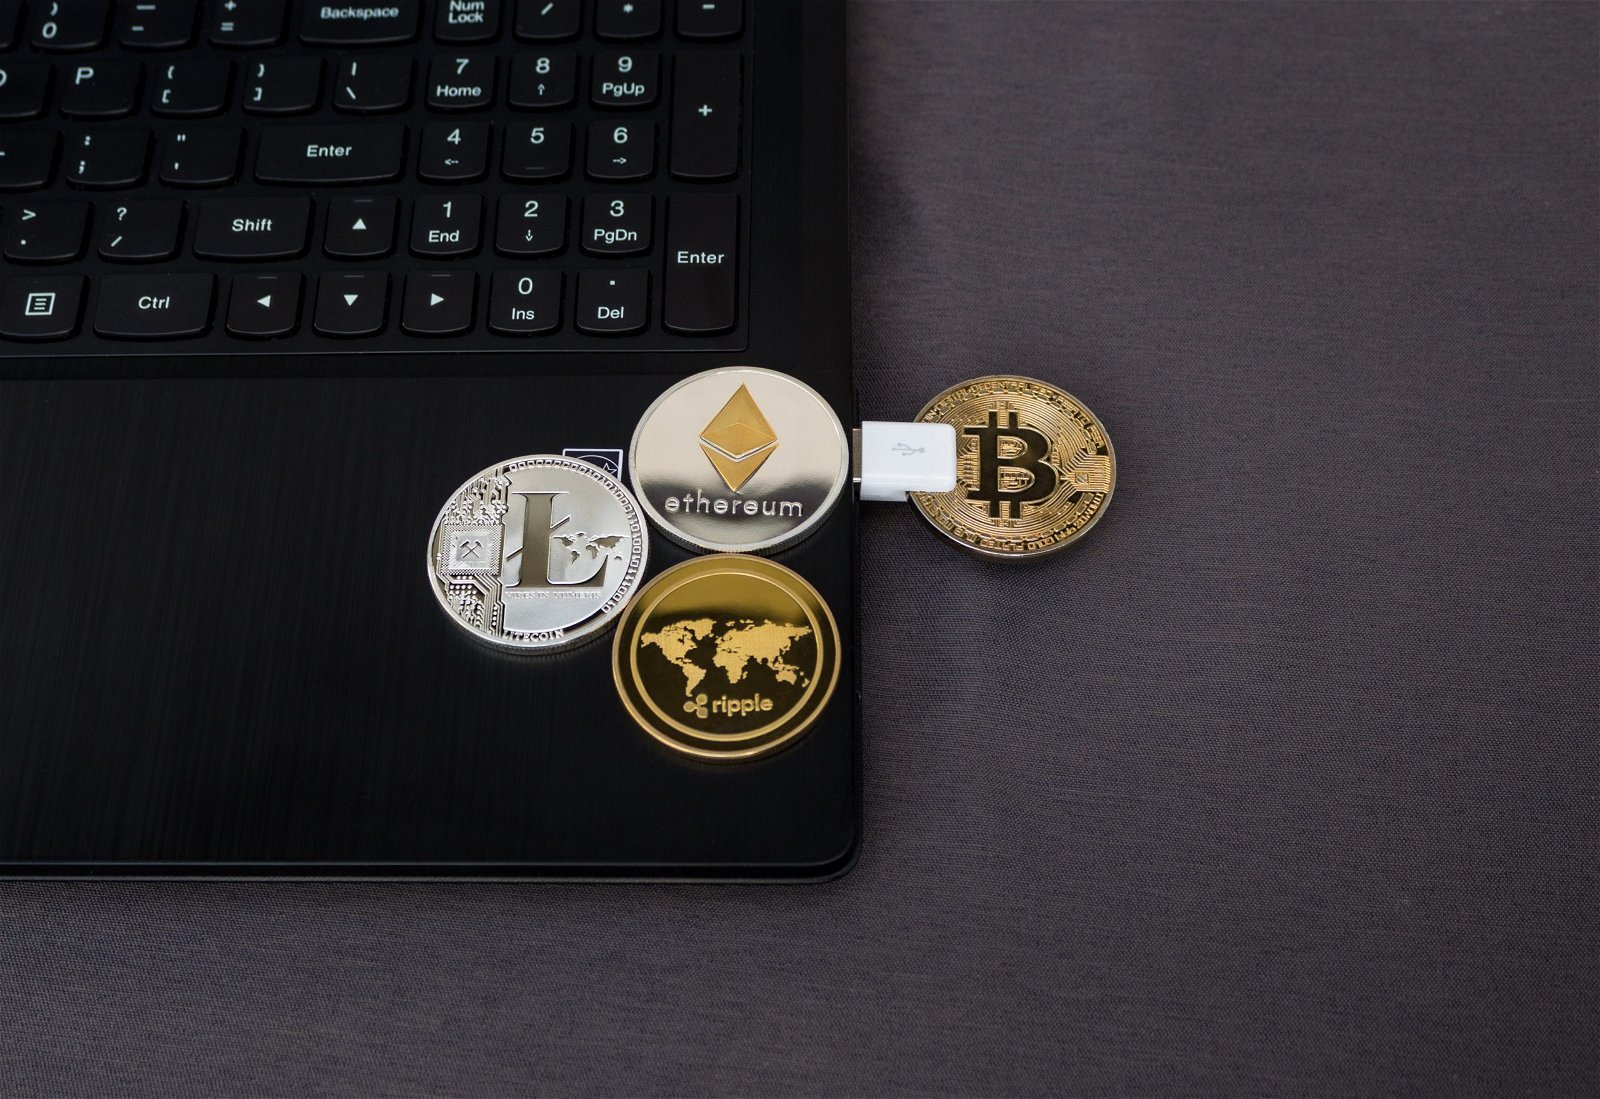 Bitcoin, Ethereum, Litecoin, Ripple and USB connected device